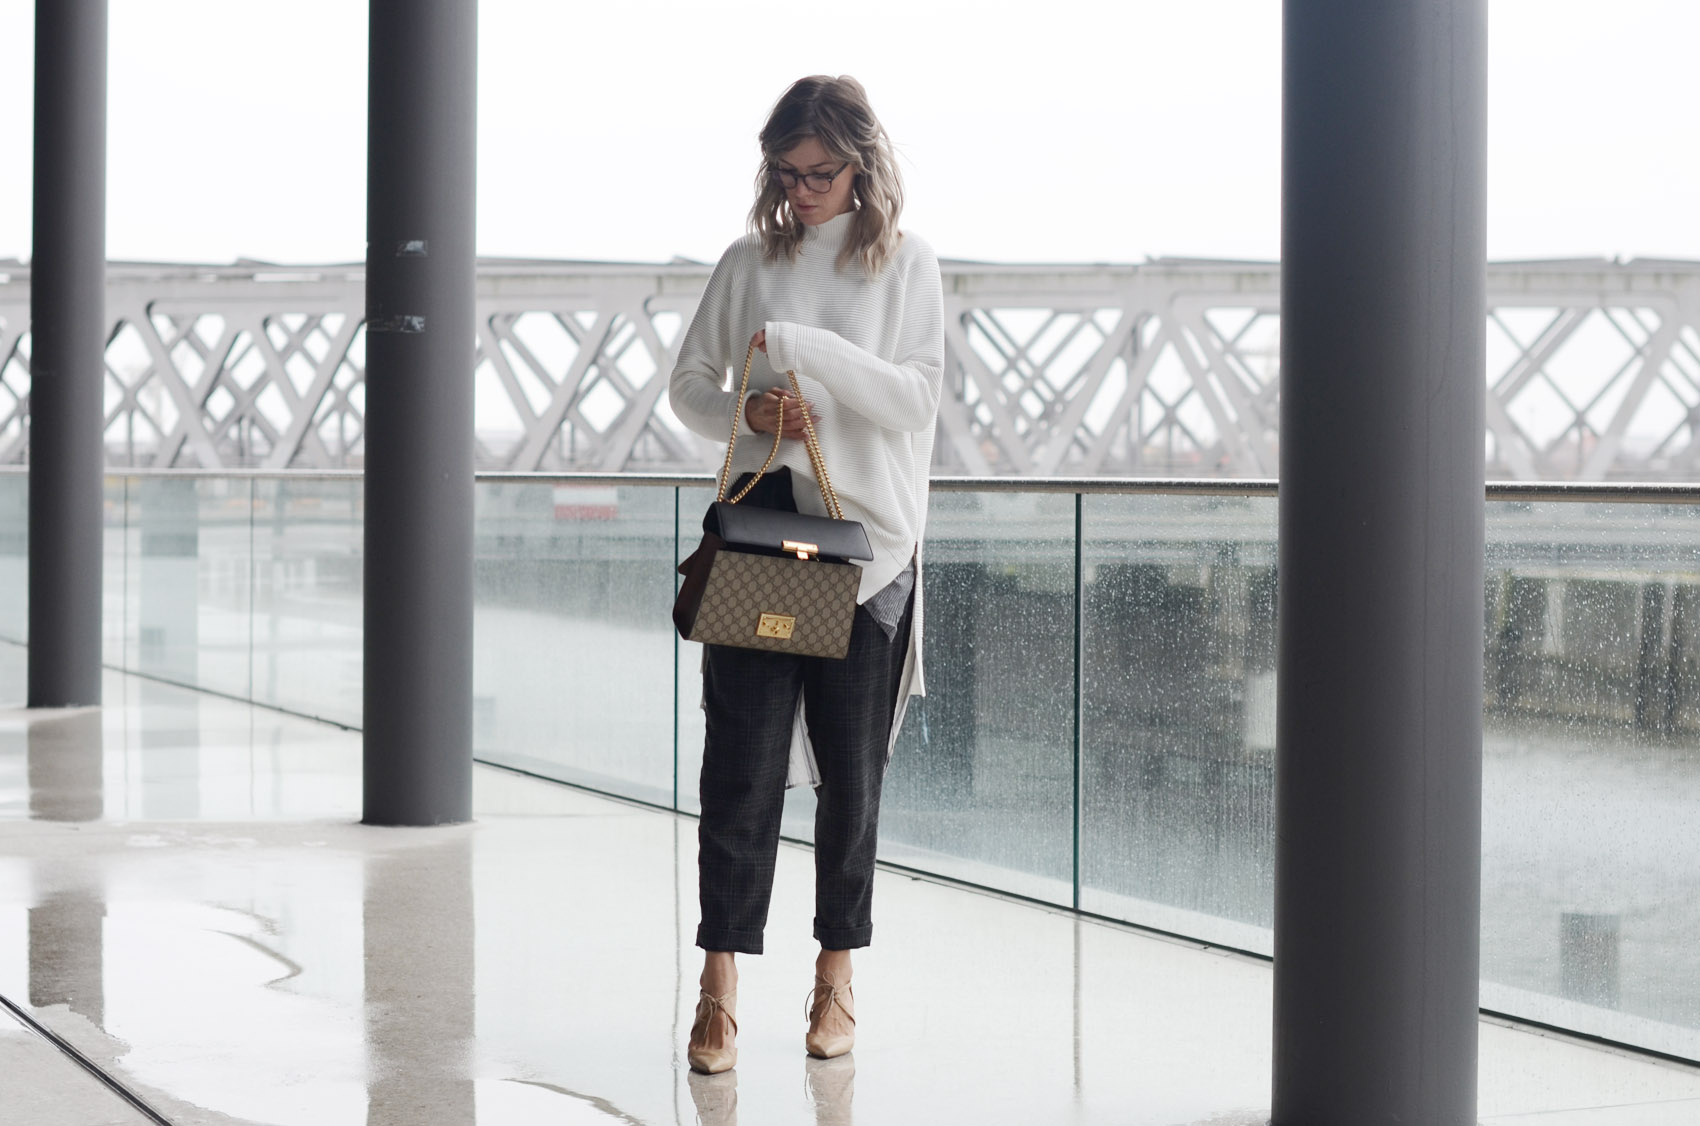 gucci-bag-casual-outfit-03